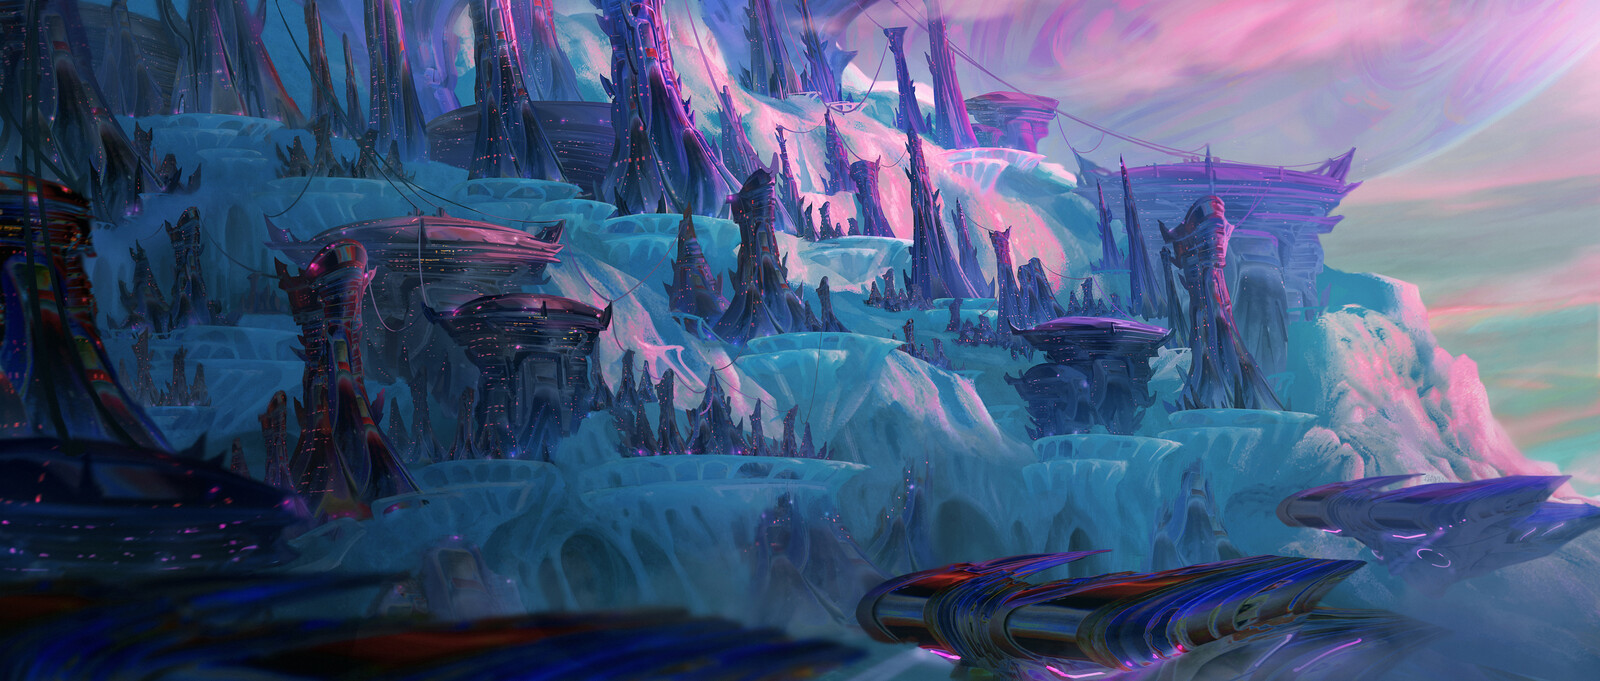 Frozen World with Centauri City